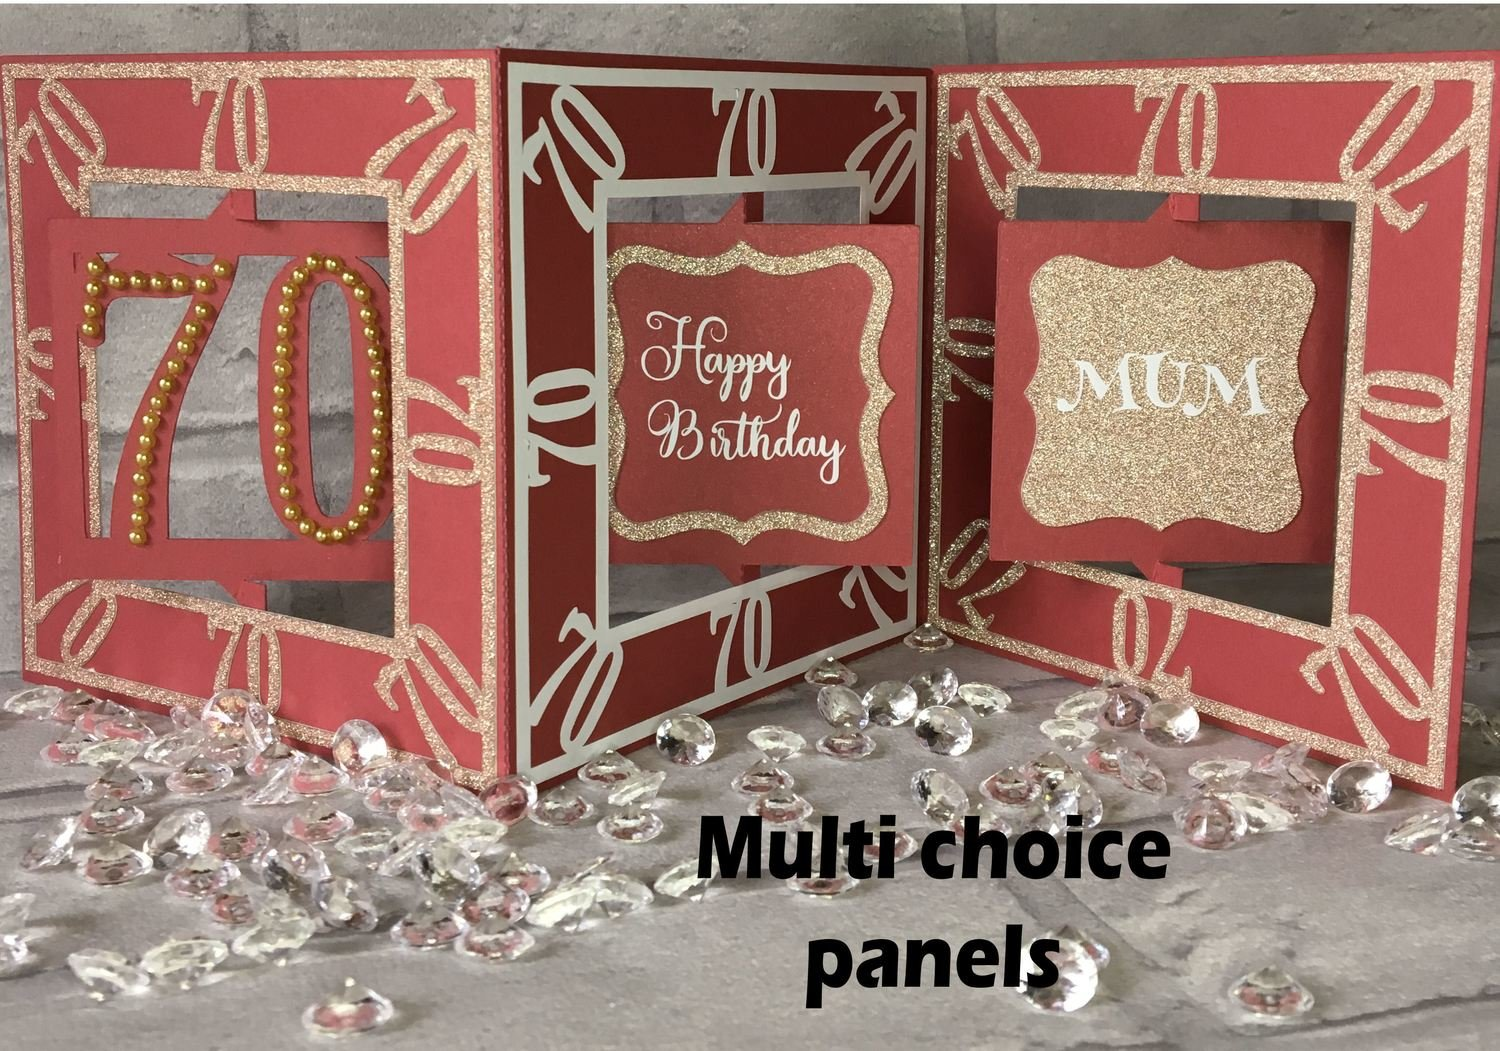 70th Birthday Card  Accordian style with optional multi decor panels